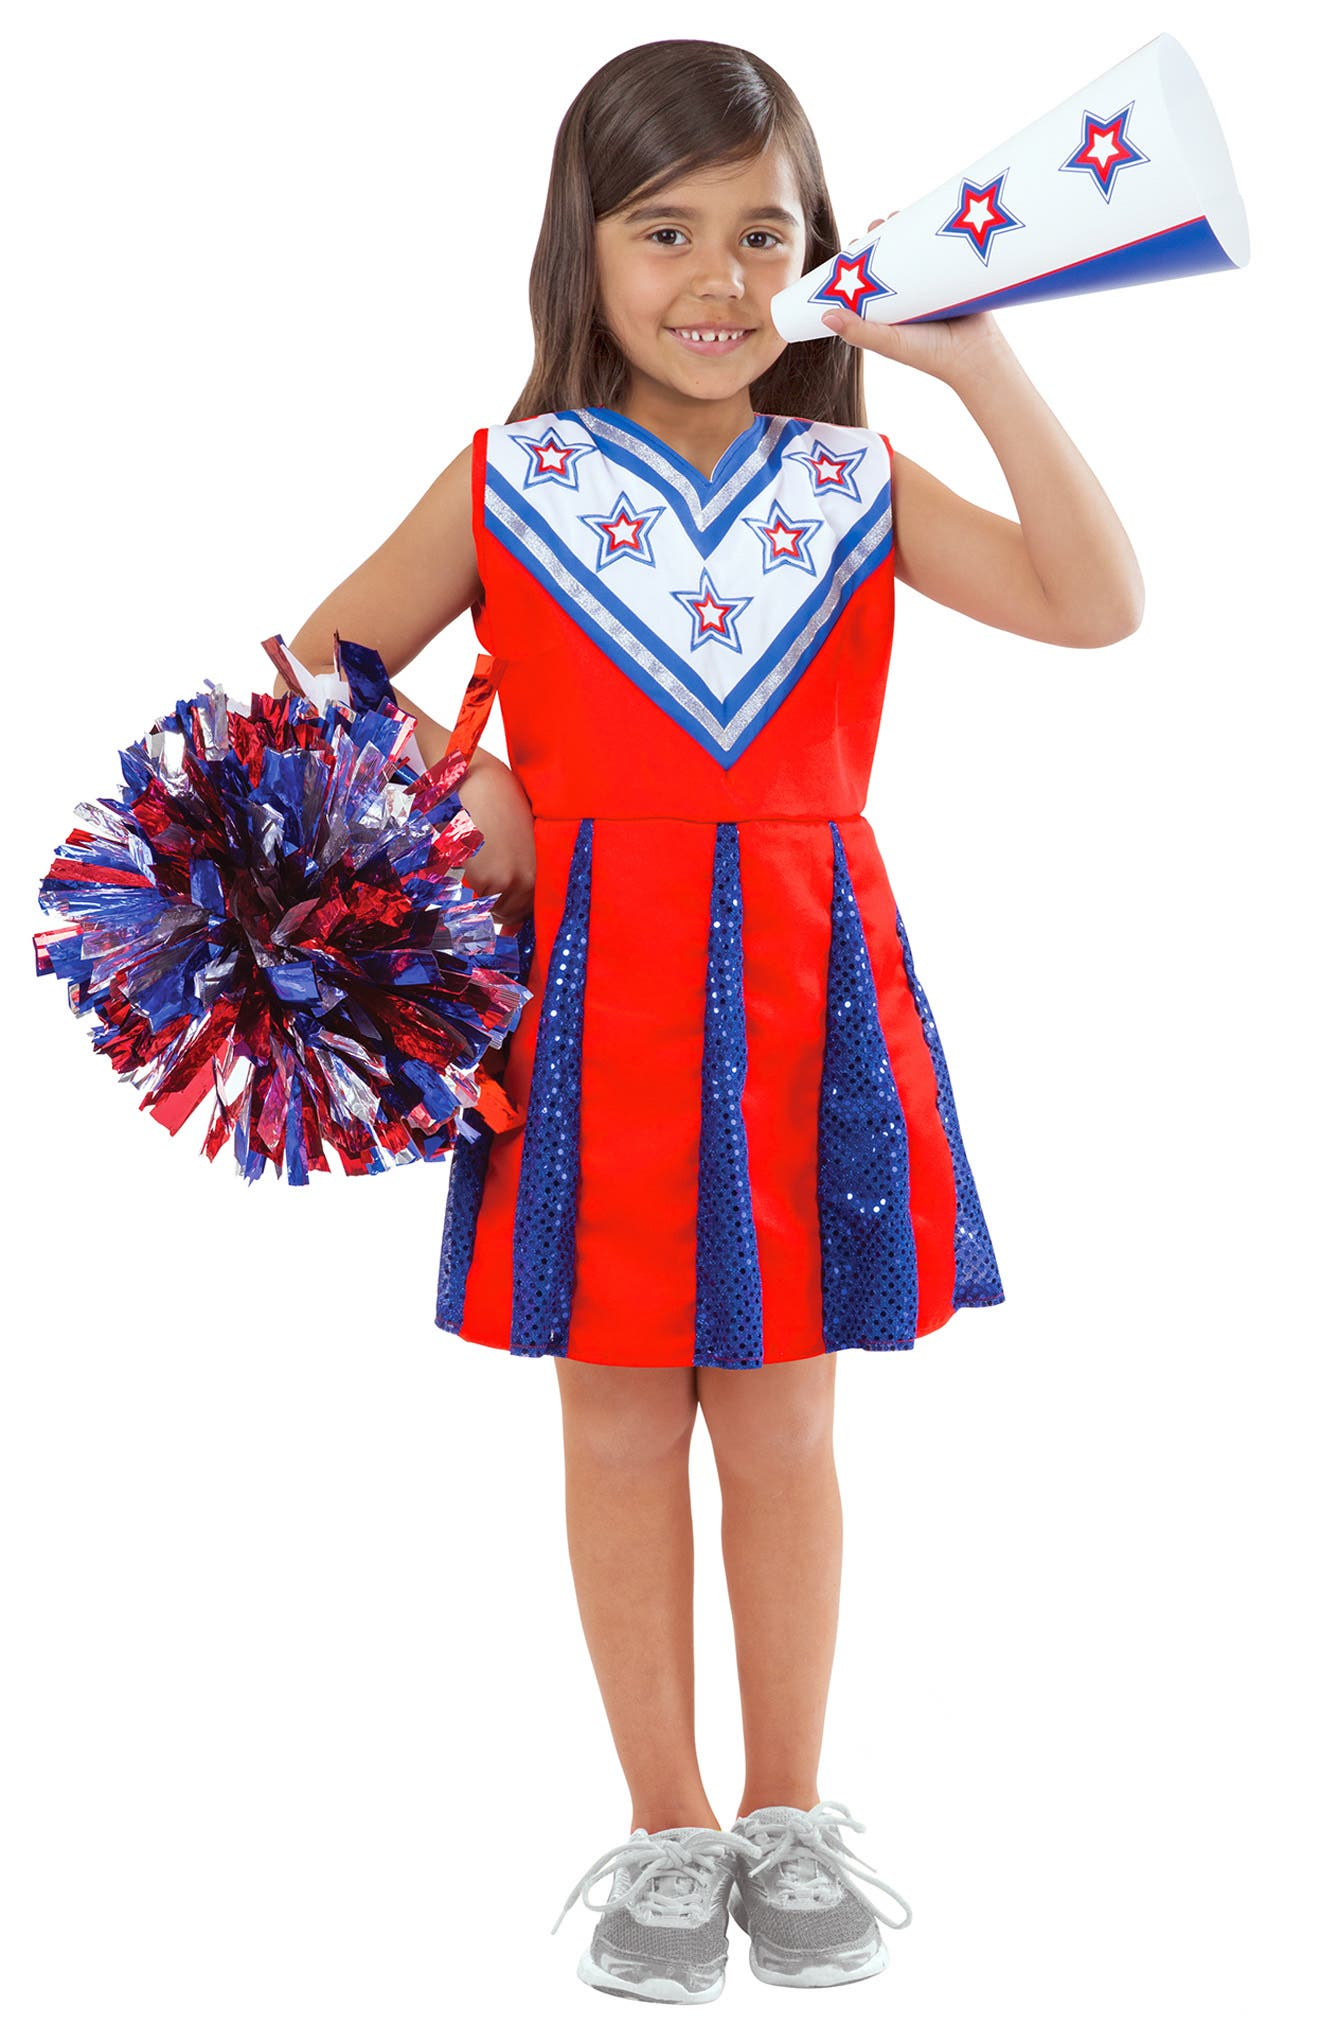 Cheerleader Role Play Set,                             Main thumbnail 1, color,                             960